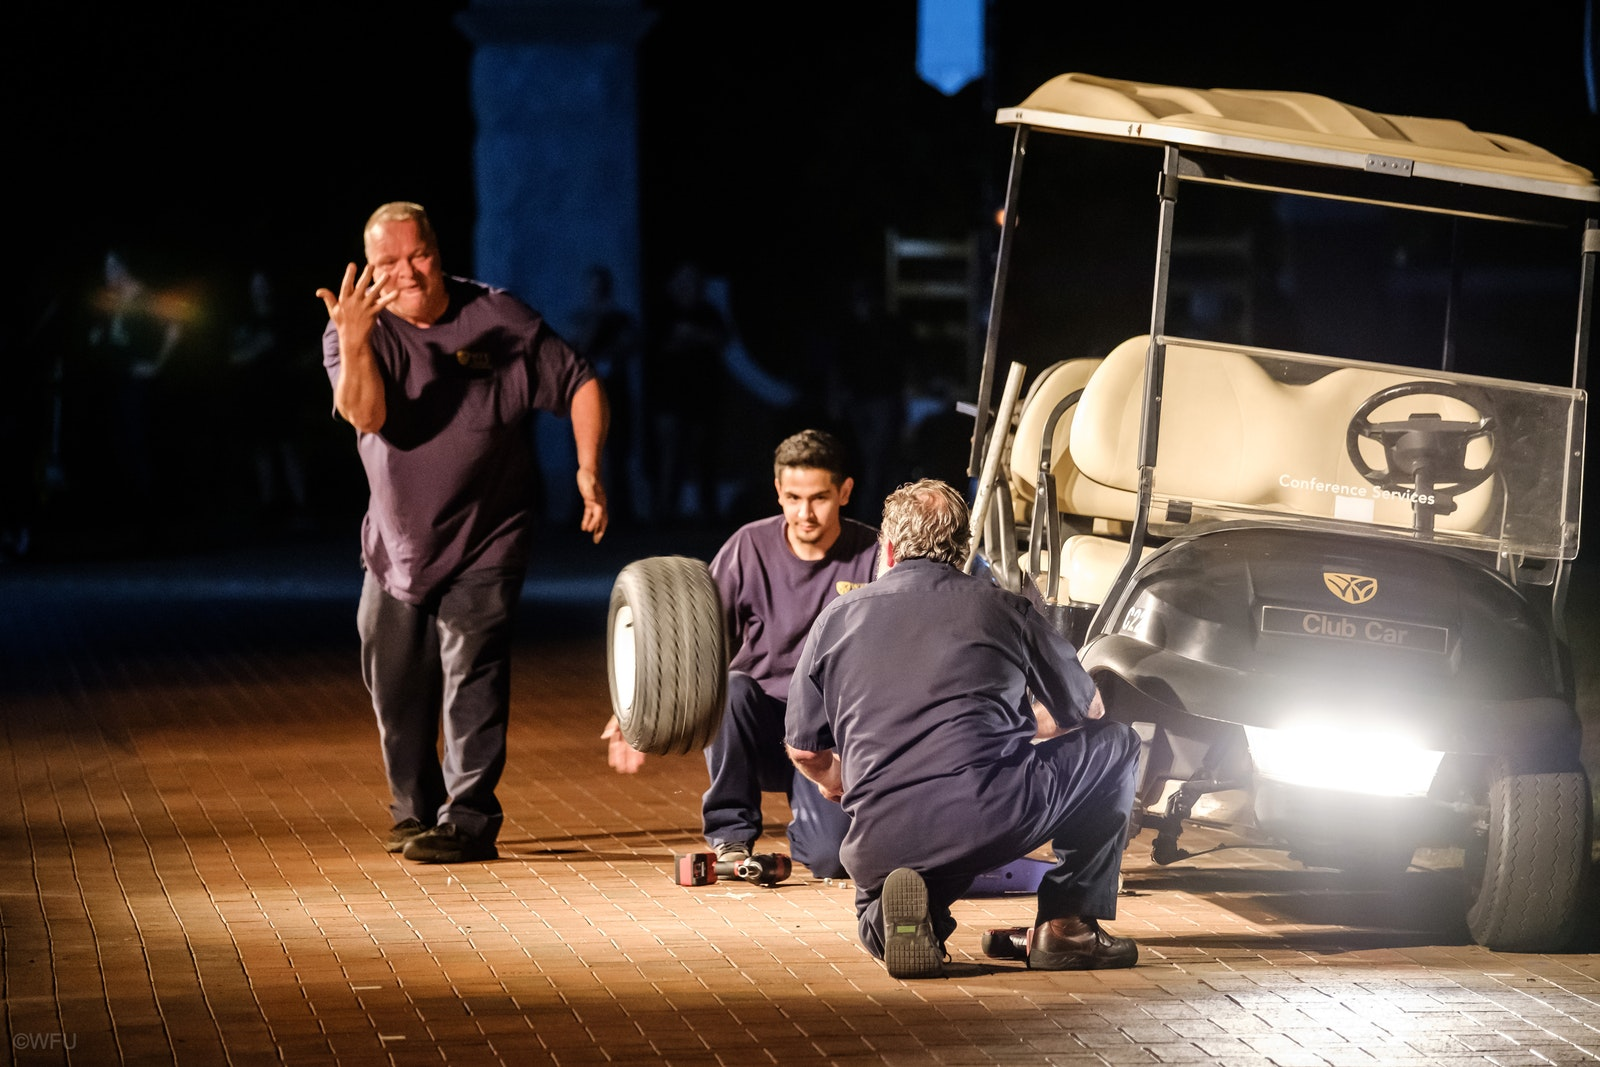 fleet crew rolling golf cart tire at From the Ground Up